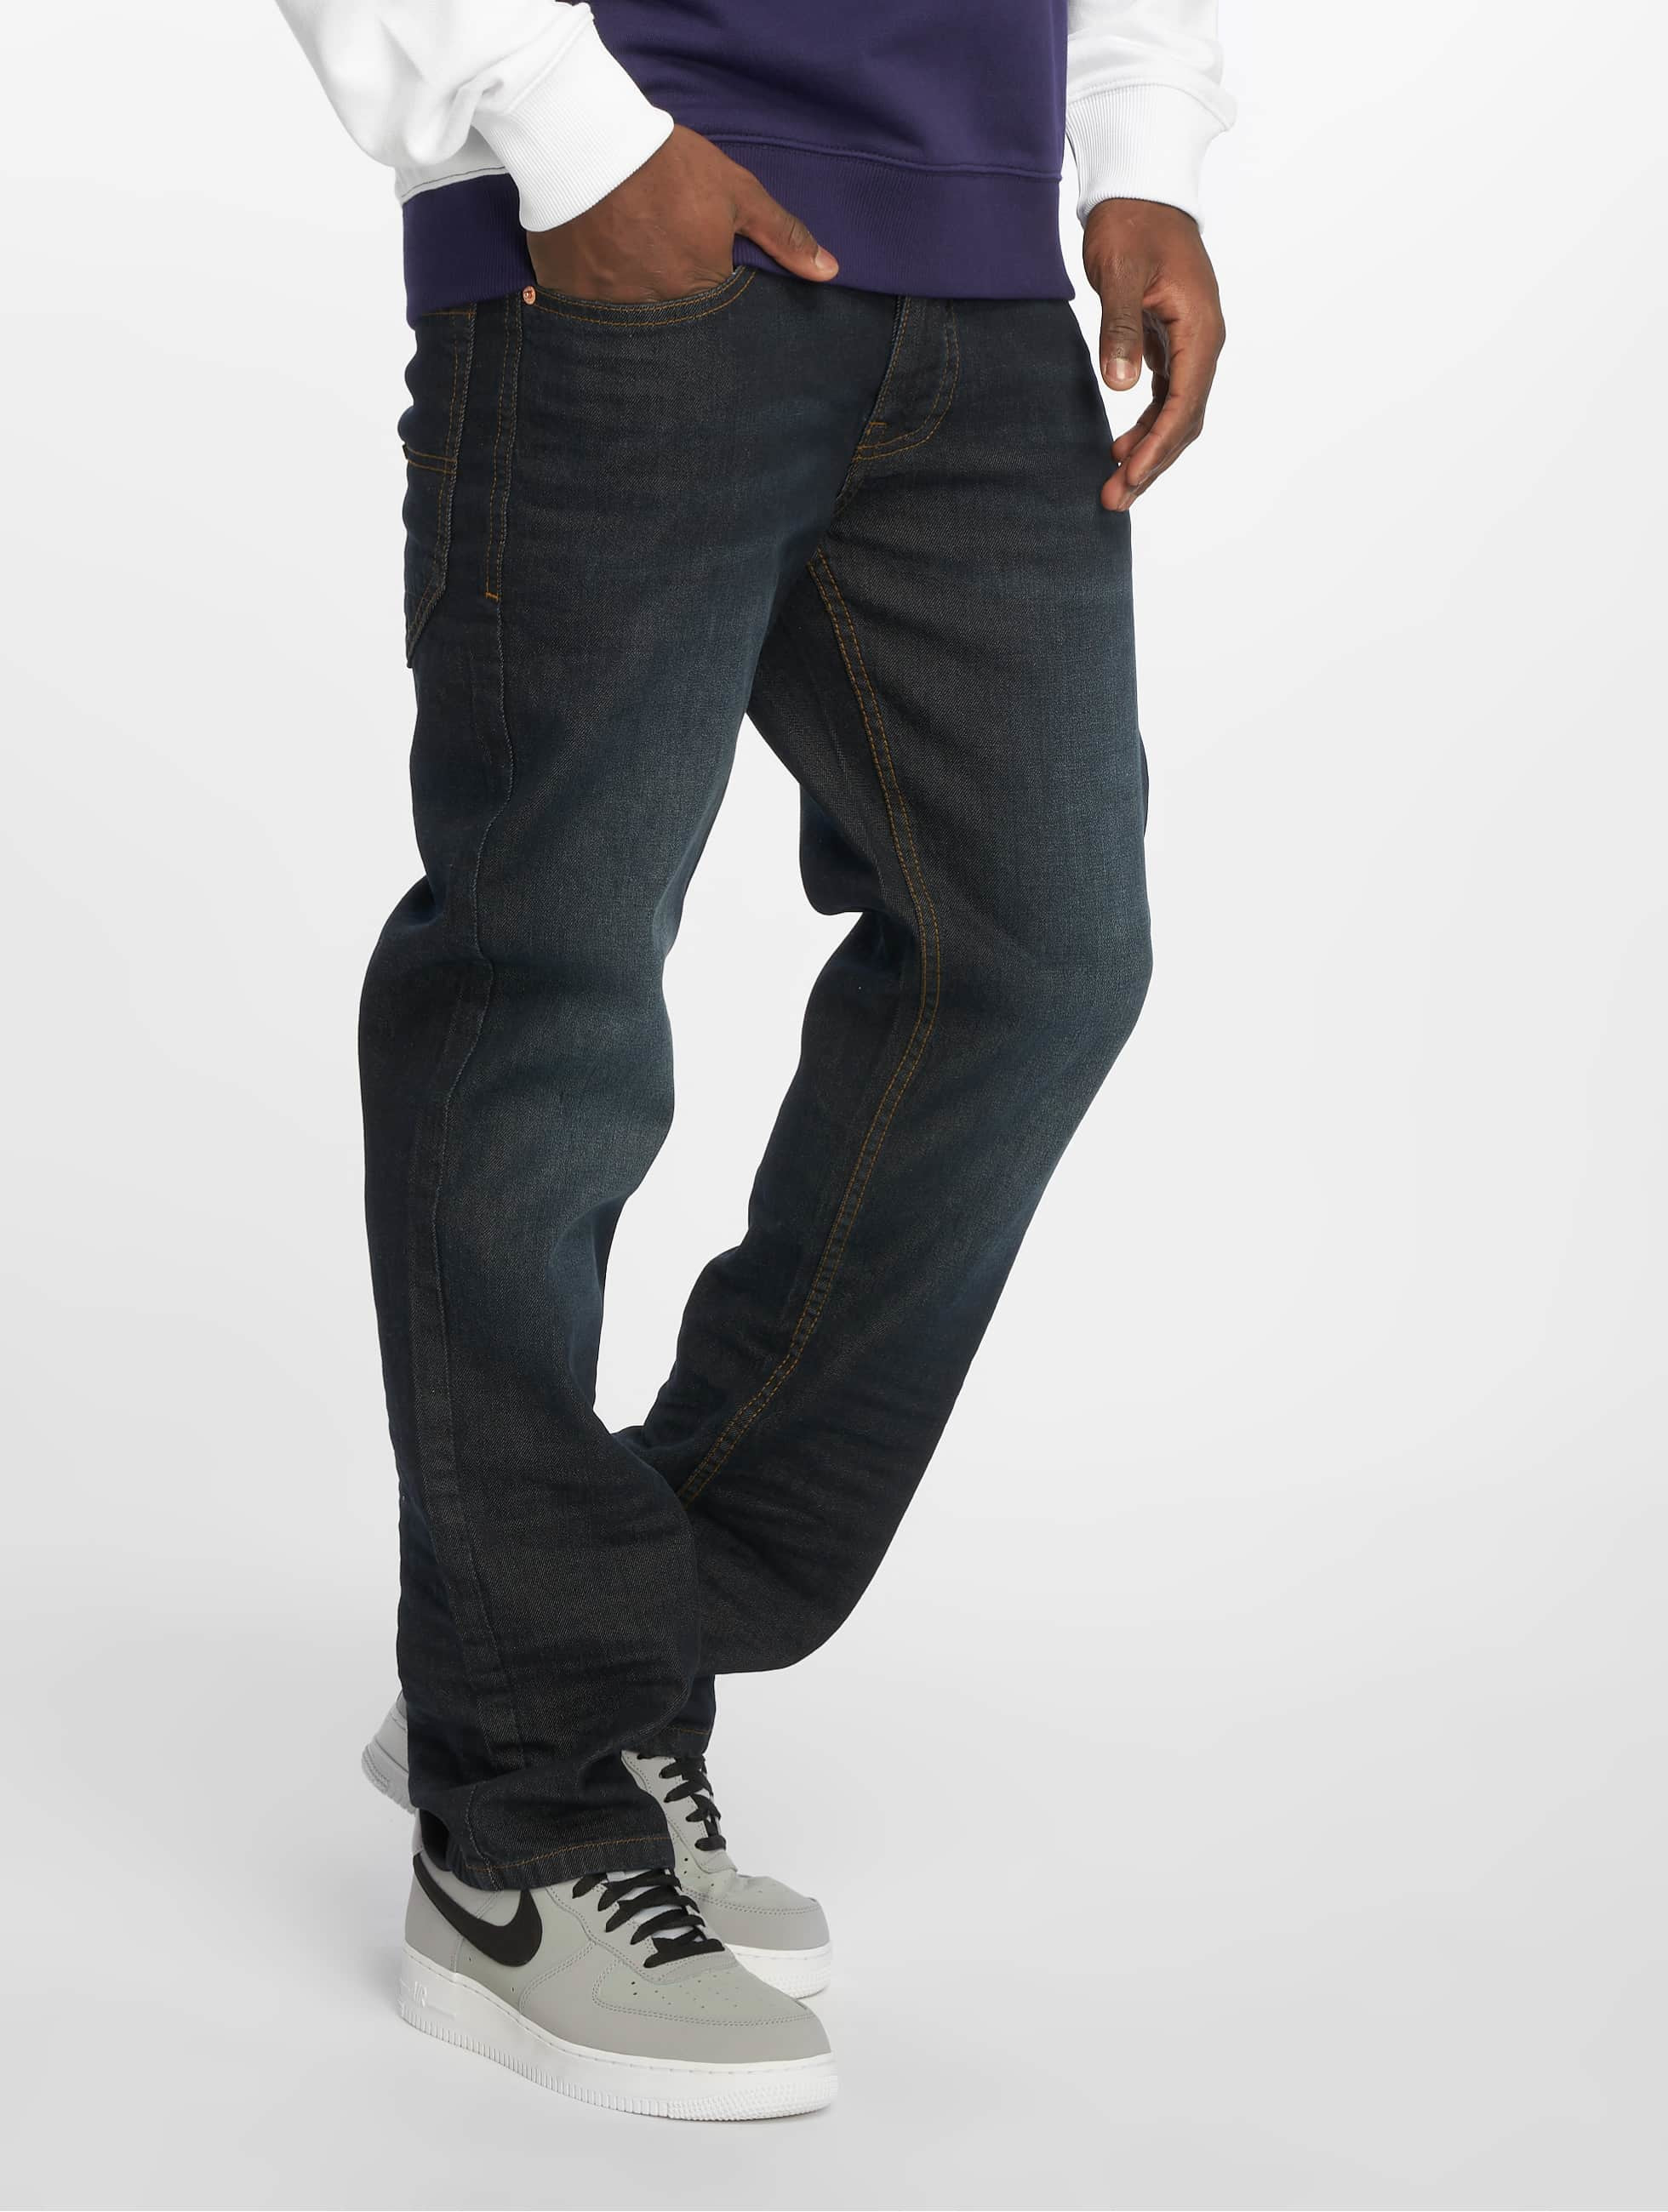 Rocawear / Straight Fit Jeans TUE Relax Fit in blue W 44 L 34